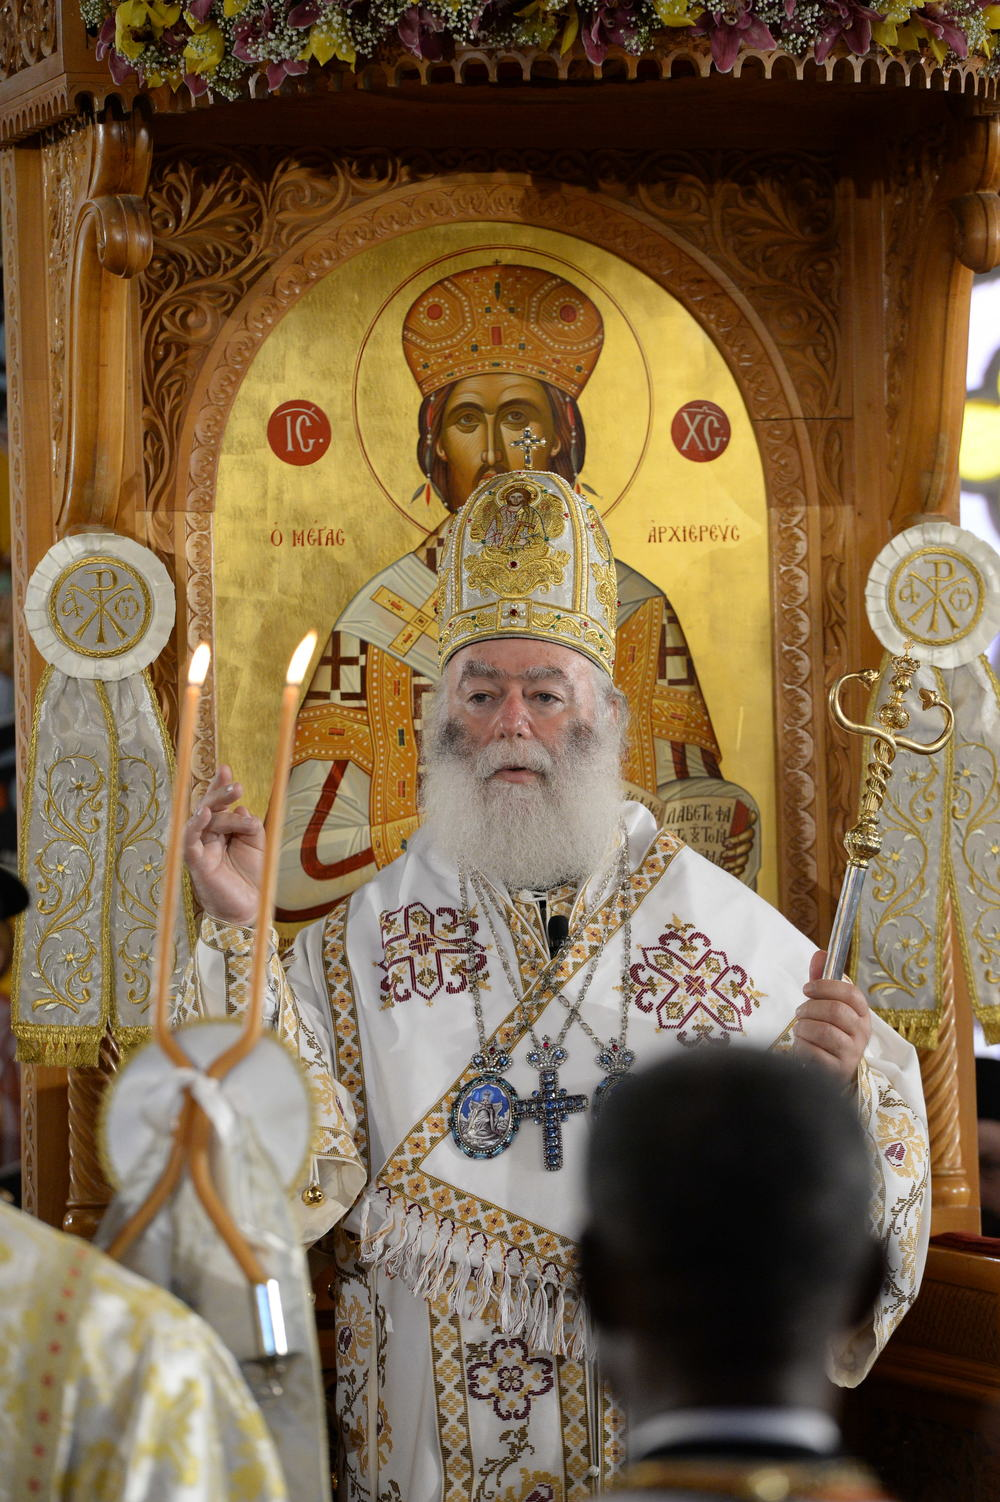 His Beatitude Patriarch Theodoros II of Alexandria presides over the Divine Liturgy at the Annunciation Church in Kissamos, Crete. PHOTO: © John Mindala